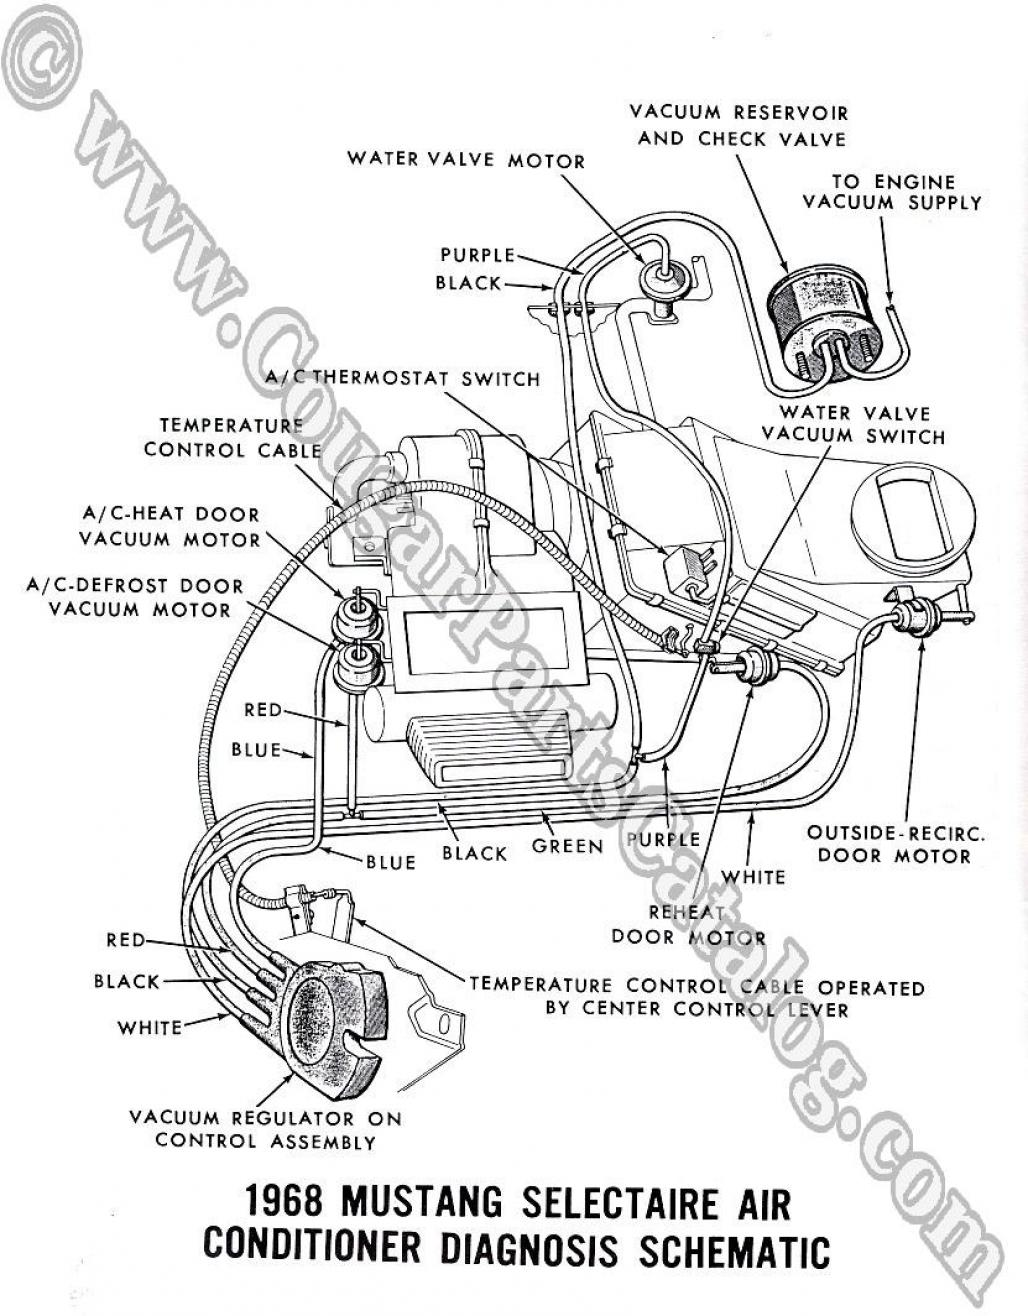 1968 Cougar Wiring Harness Diagram | Wiring Diagram on